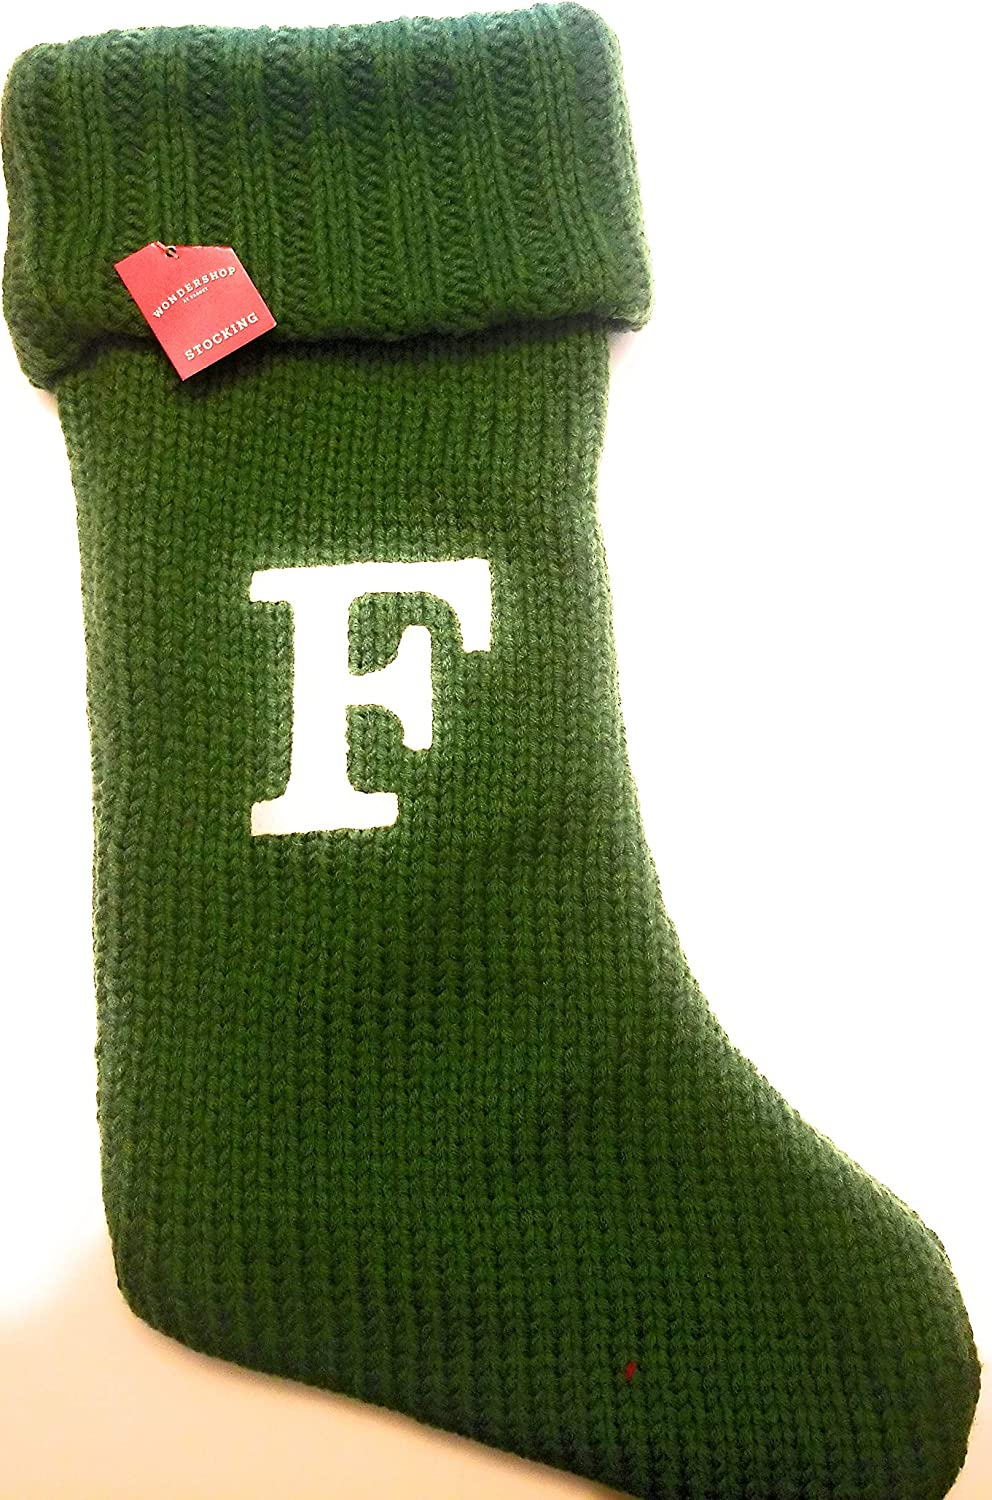 Wondershop Holiday Christmas Green Thick Knit Stocking Sock 19 Inches Monogram Letter F Mantel Decoration